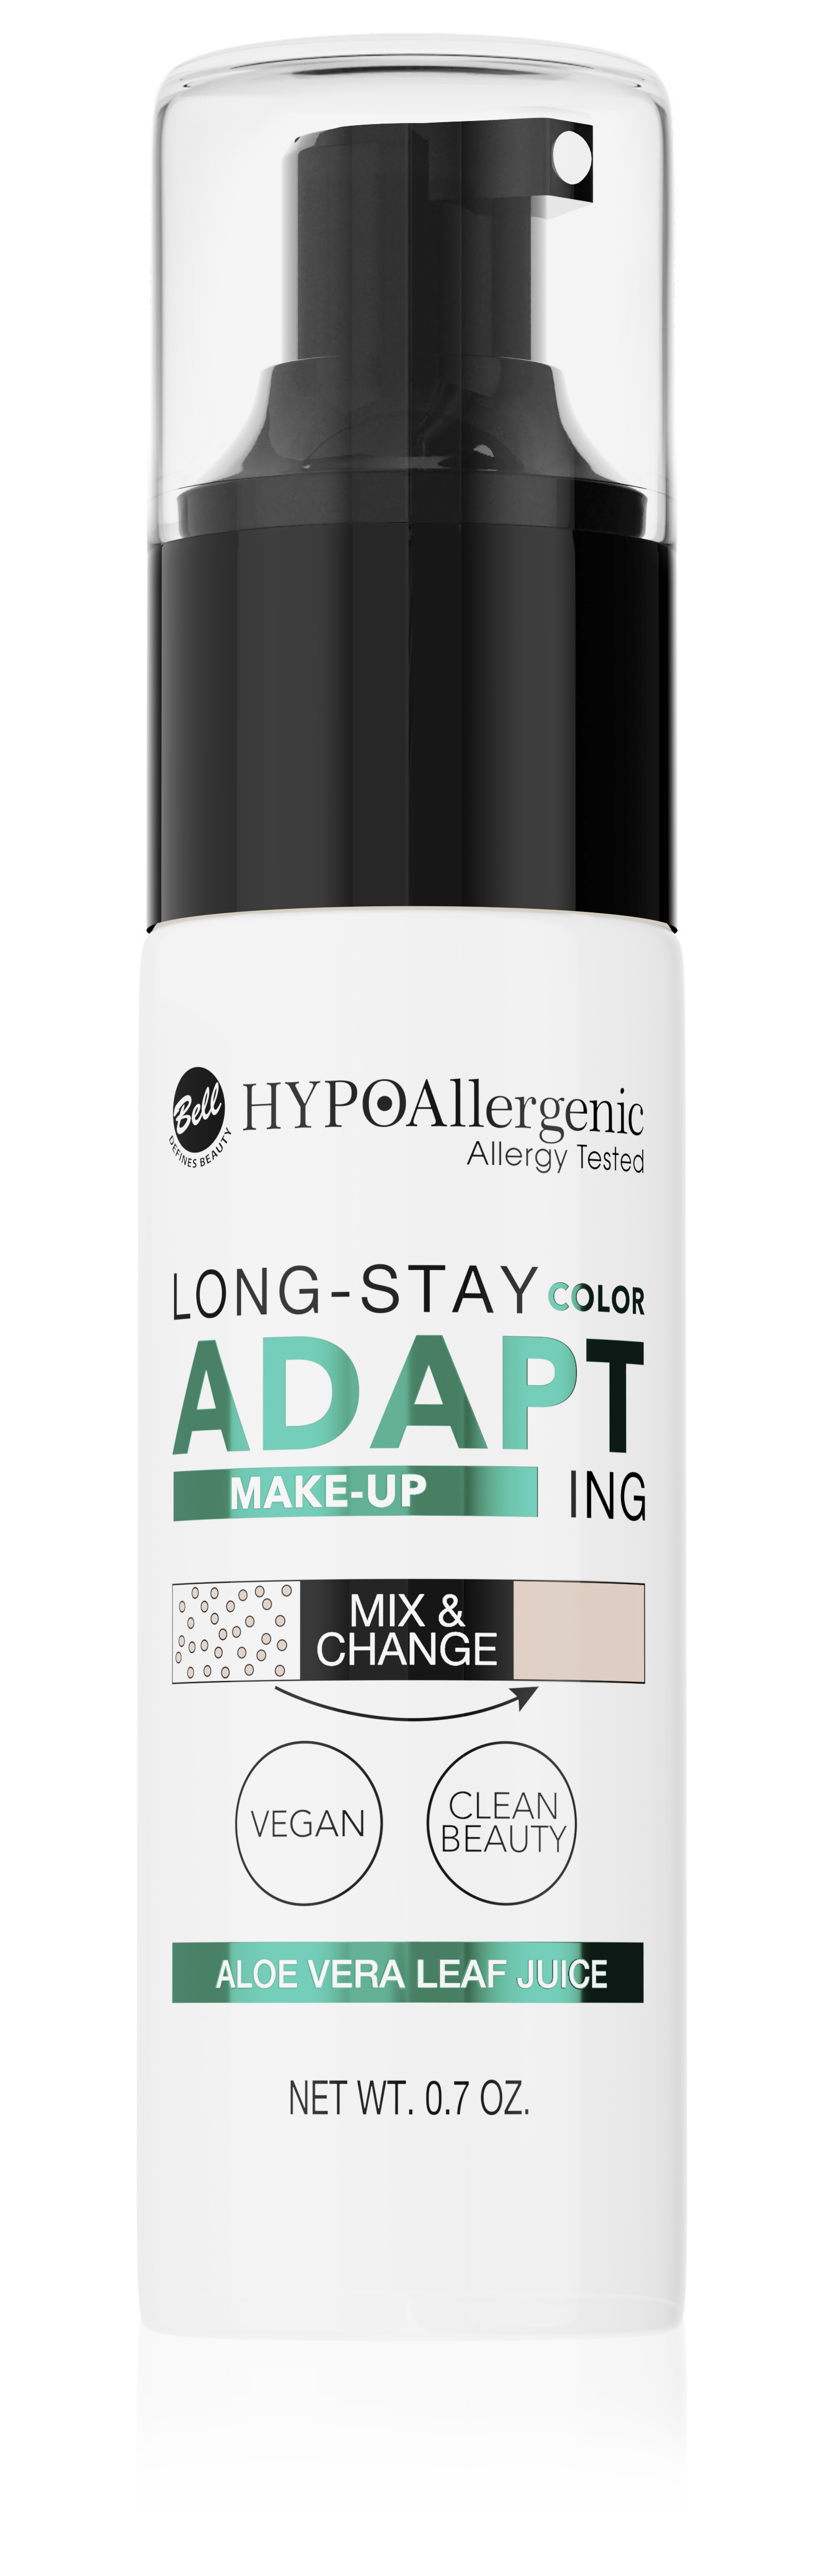 HYPOAllergenic Long-Stay Color Aadapting Make-Up